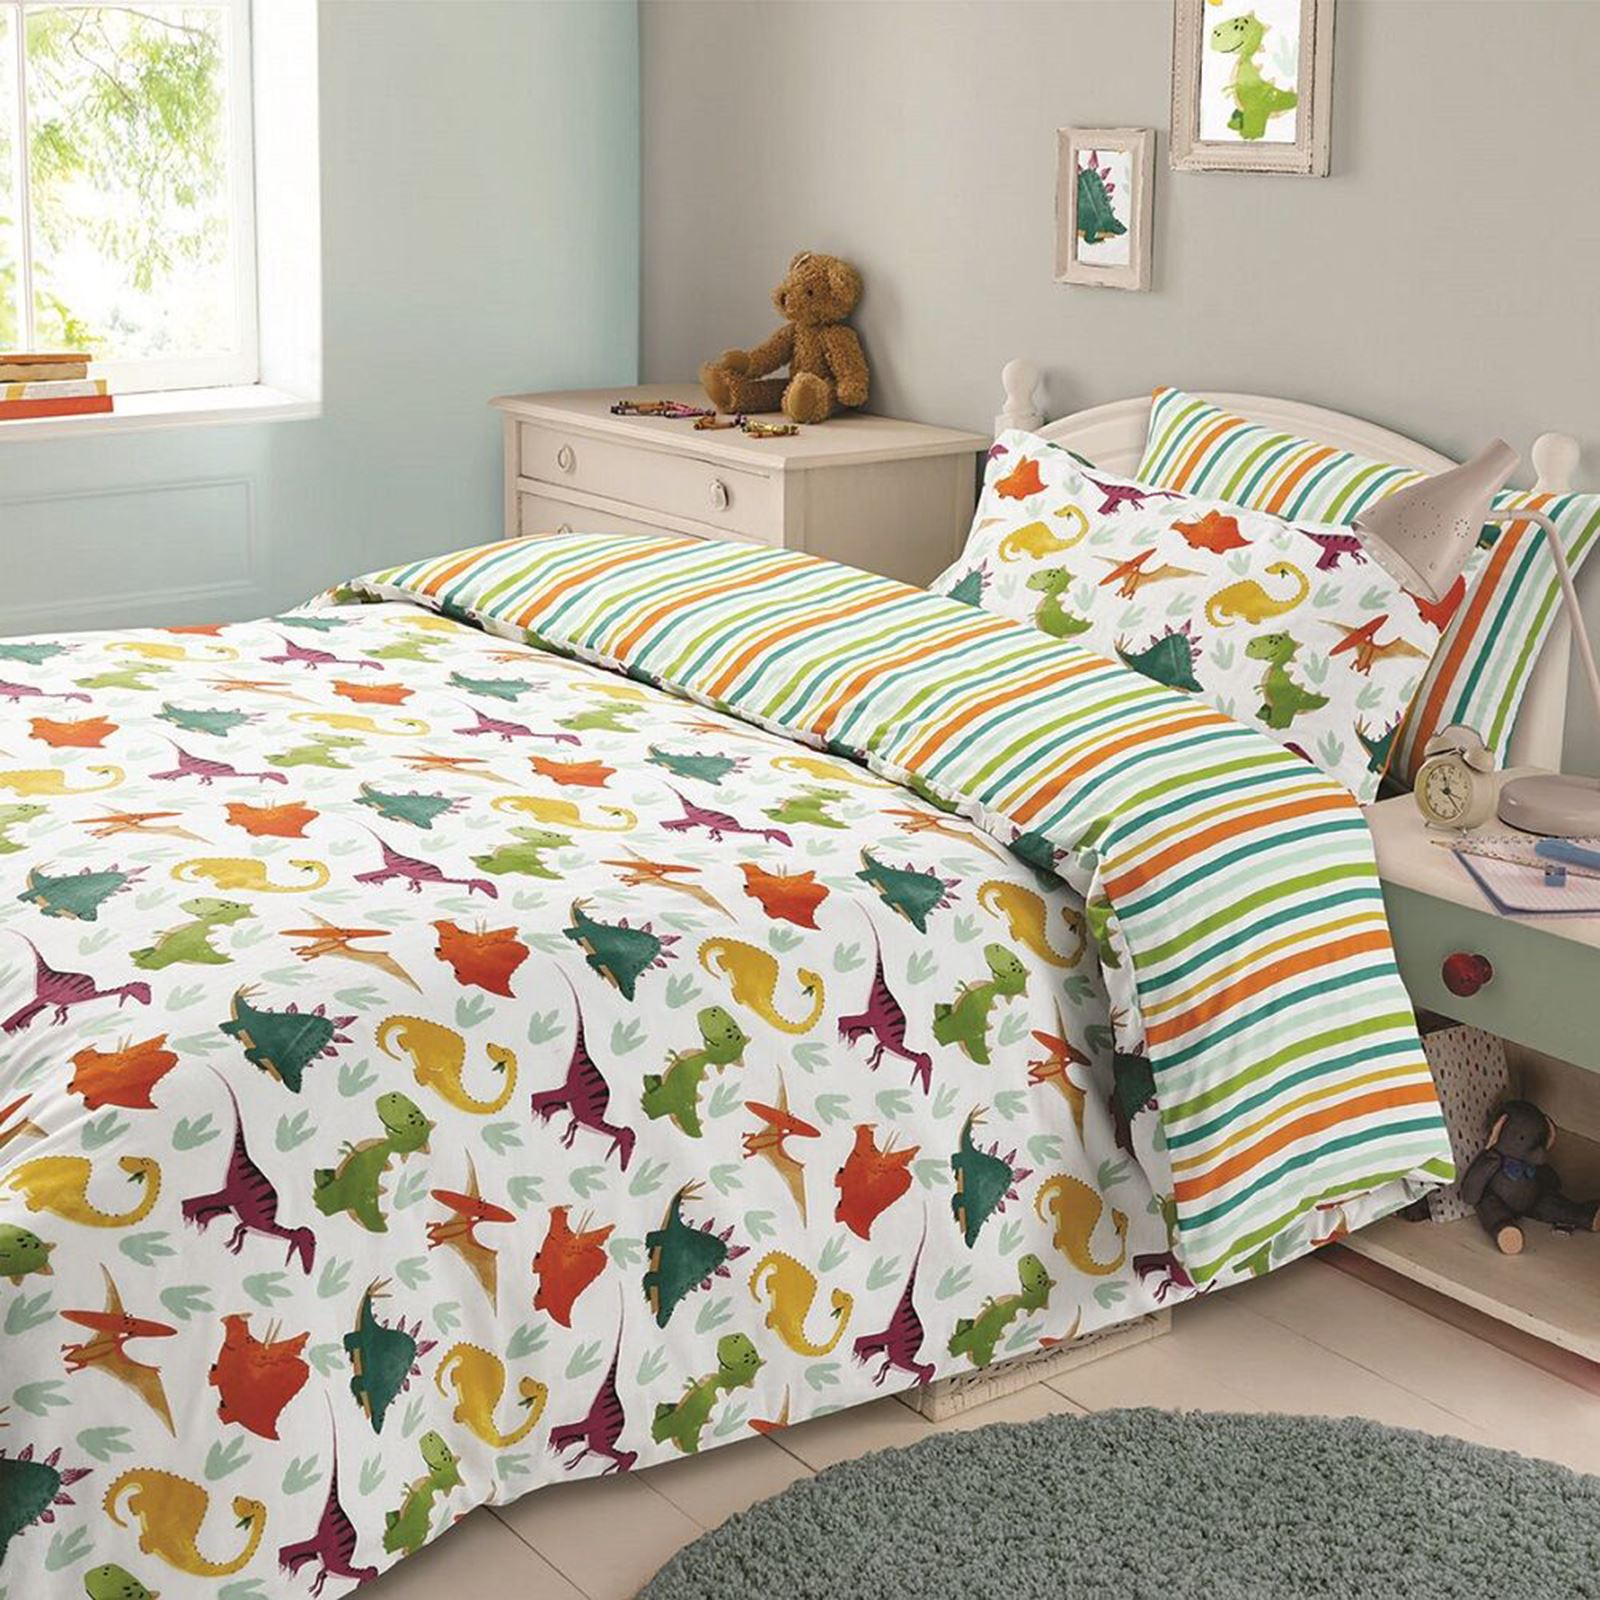 Boys Double Quilt Cover Details About Boys Double Duvet Cover Sets Army Cowboy Pirates Dinosaurs Farm Jungle More